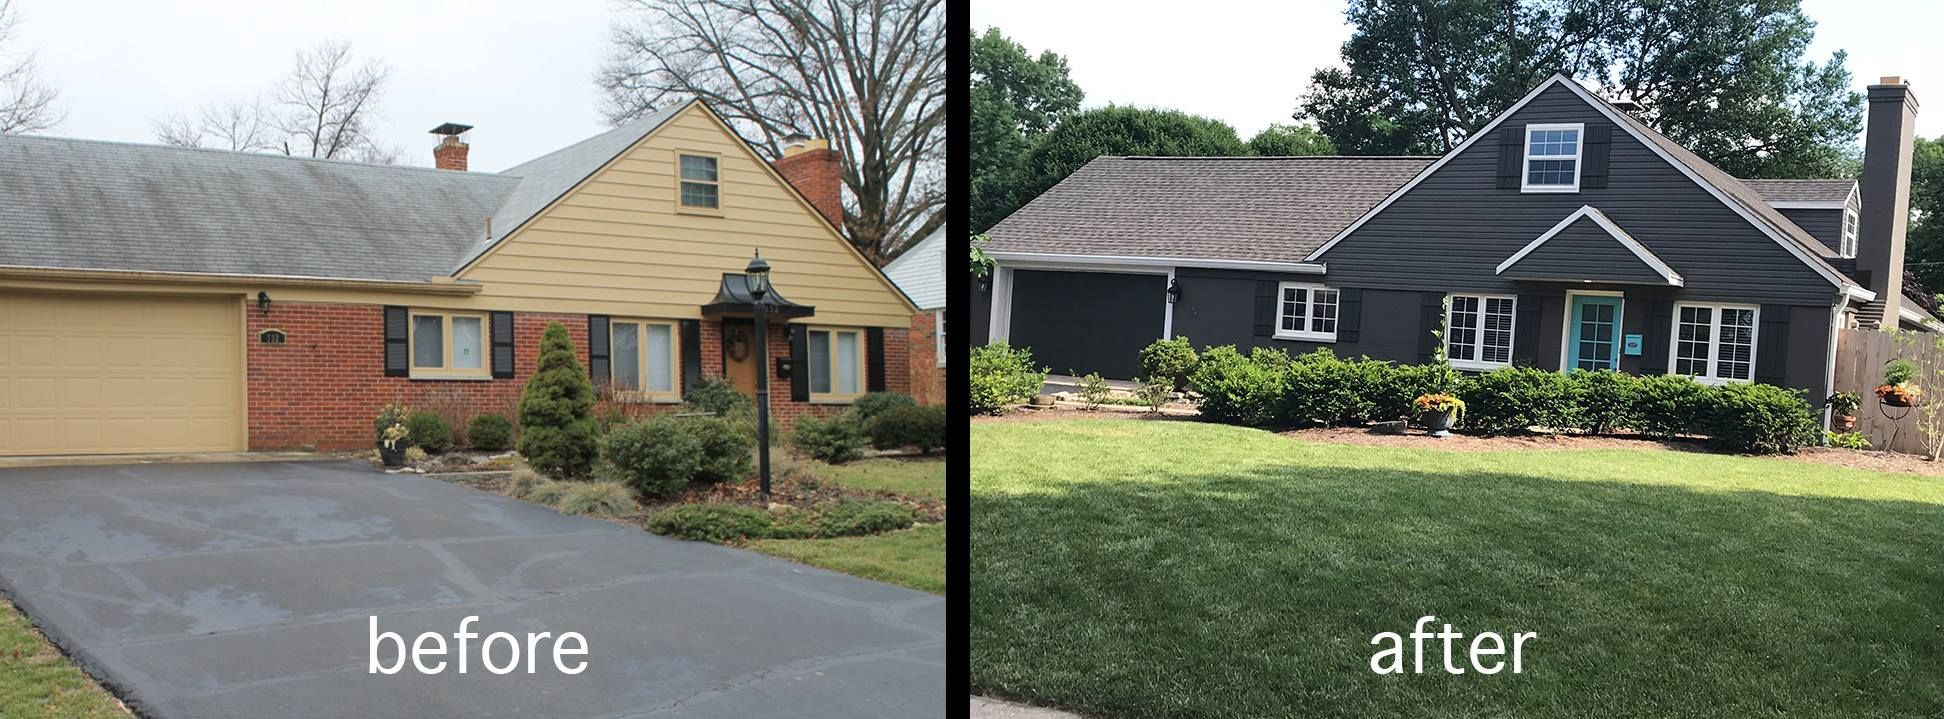 Before and after of Home Update in 2020 Remodeling